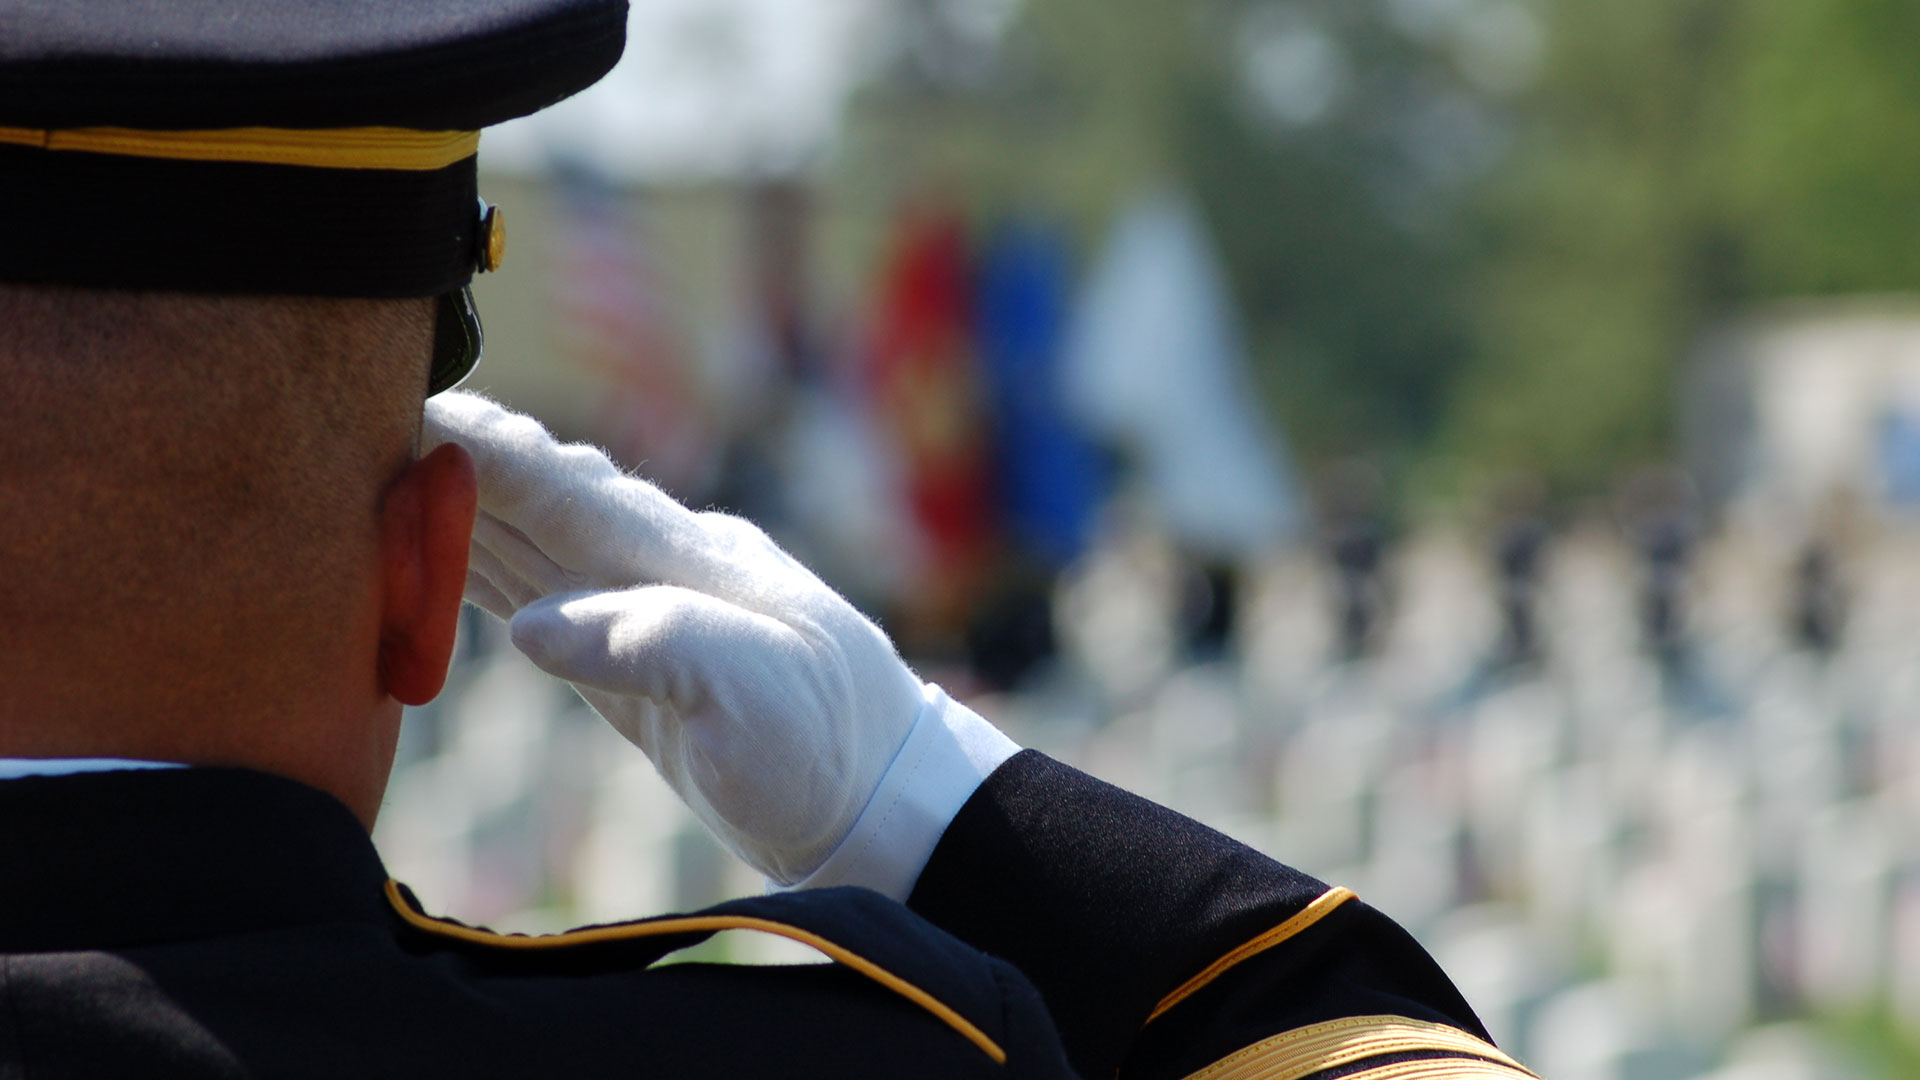 Greater Sacramento Region Memorial Day events